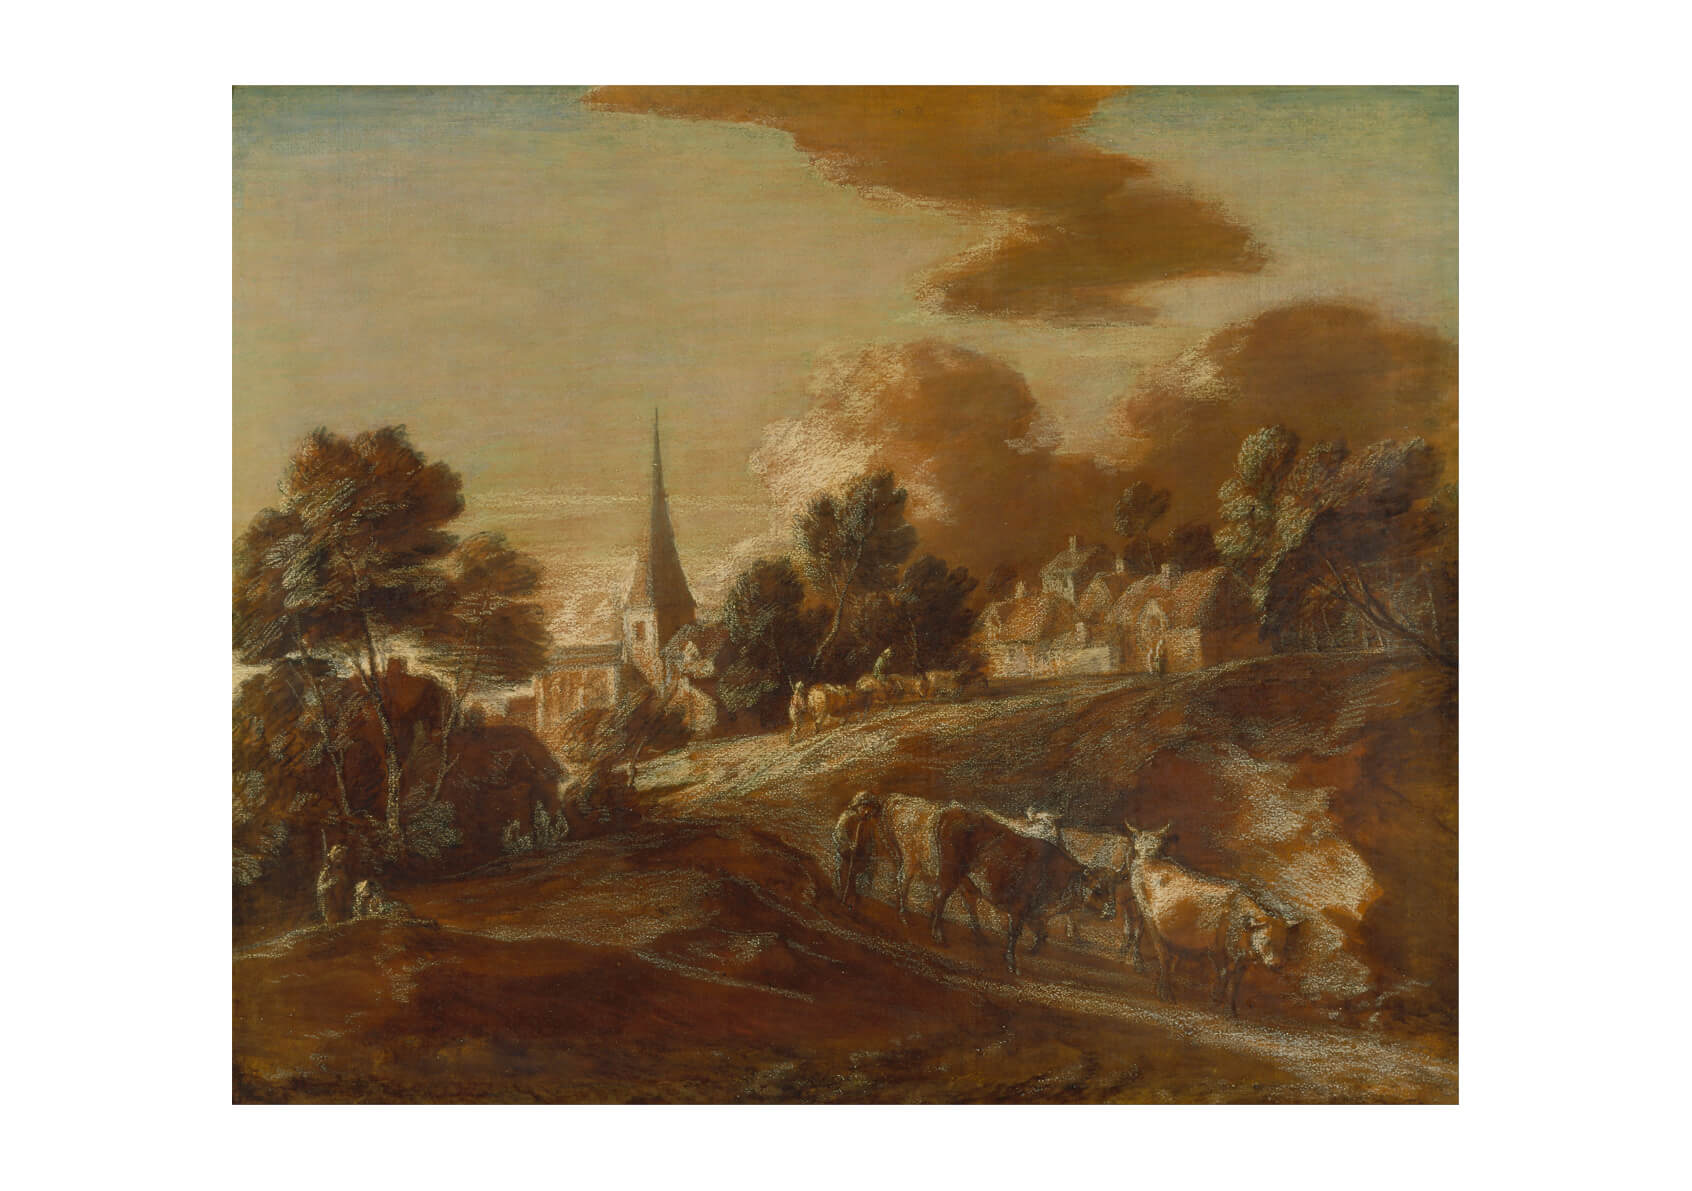 Thomas Gainsborough - An Imaginary Wooded Village